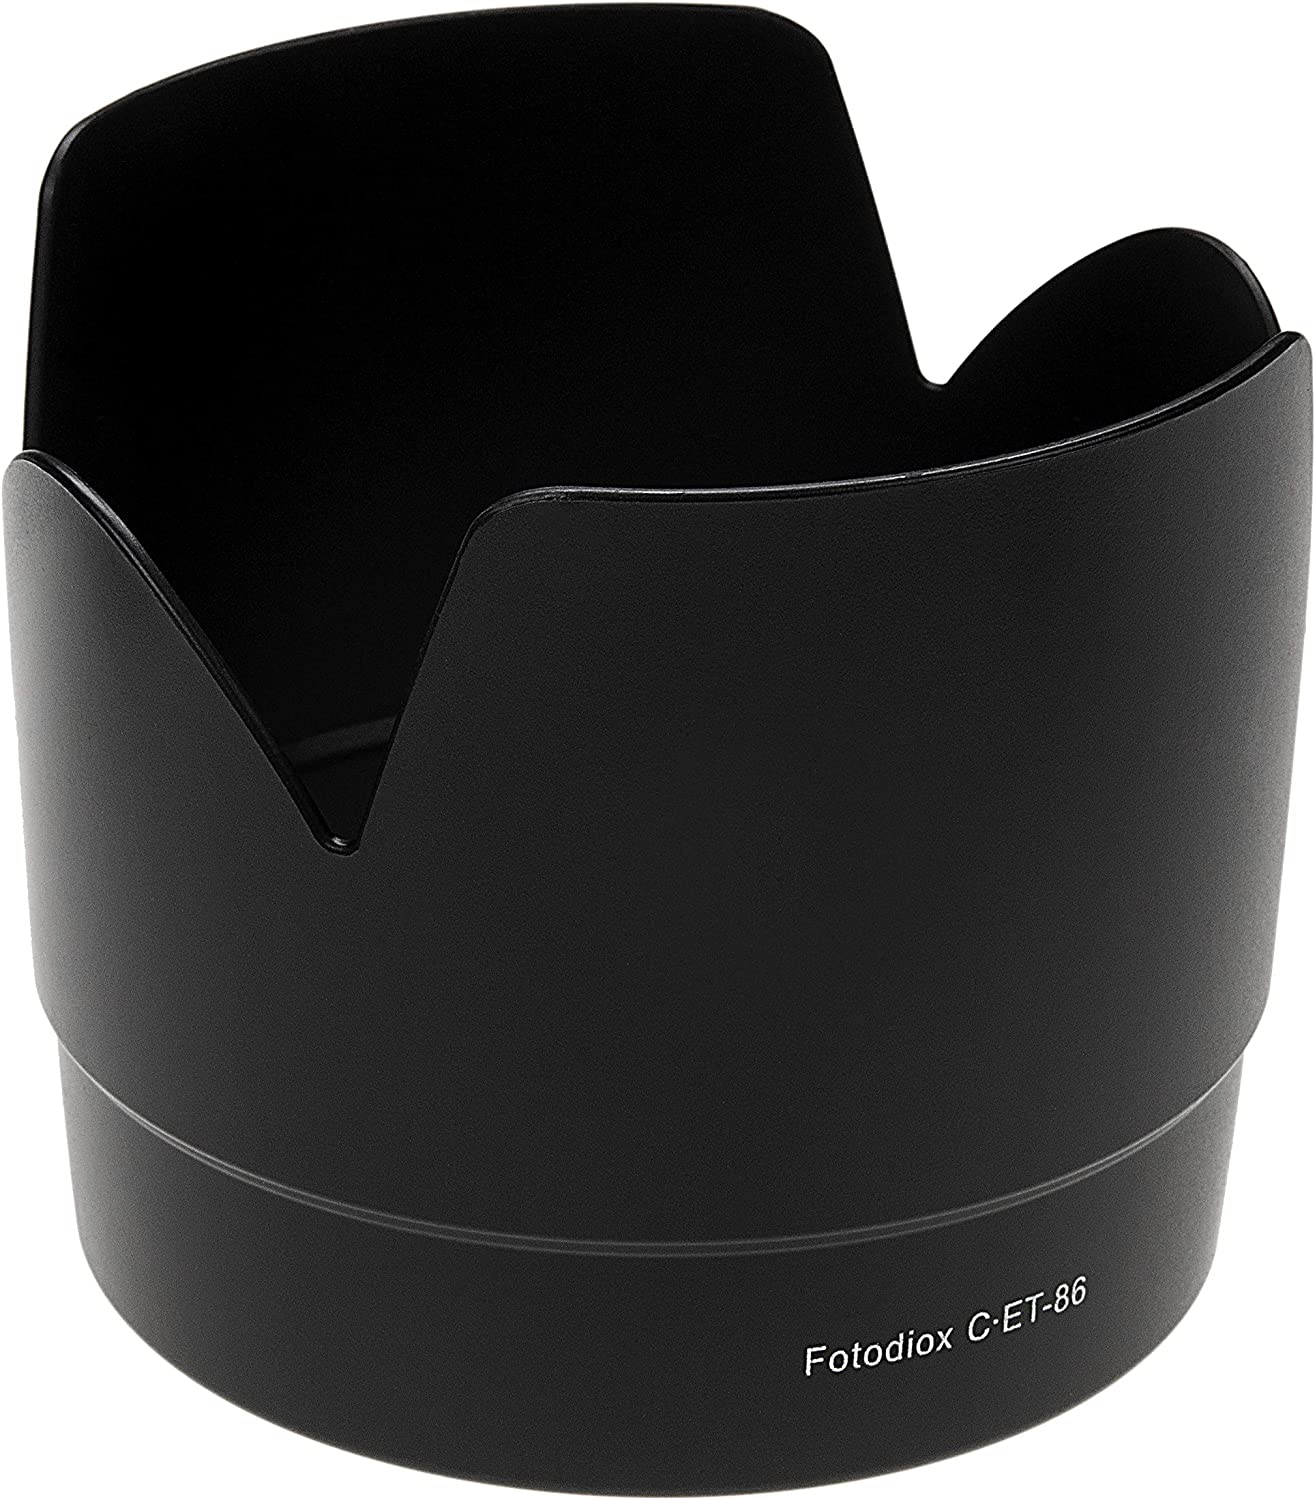 Fotodiox Lens Hood Replacement for ET-86 Compatible with Canon EF 70-200mm f//2.8L is USM Lens